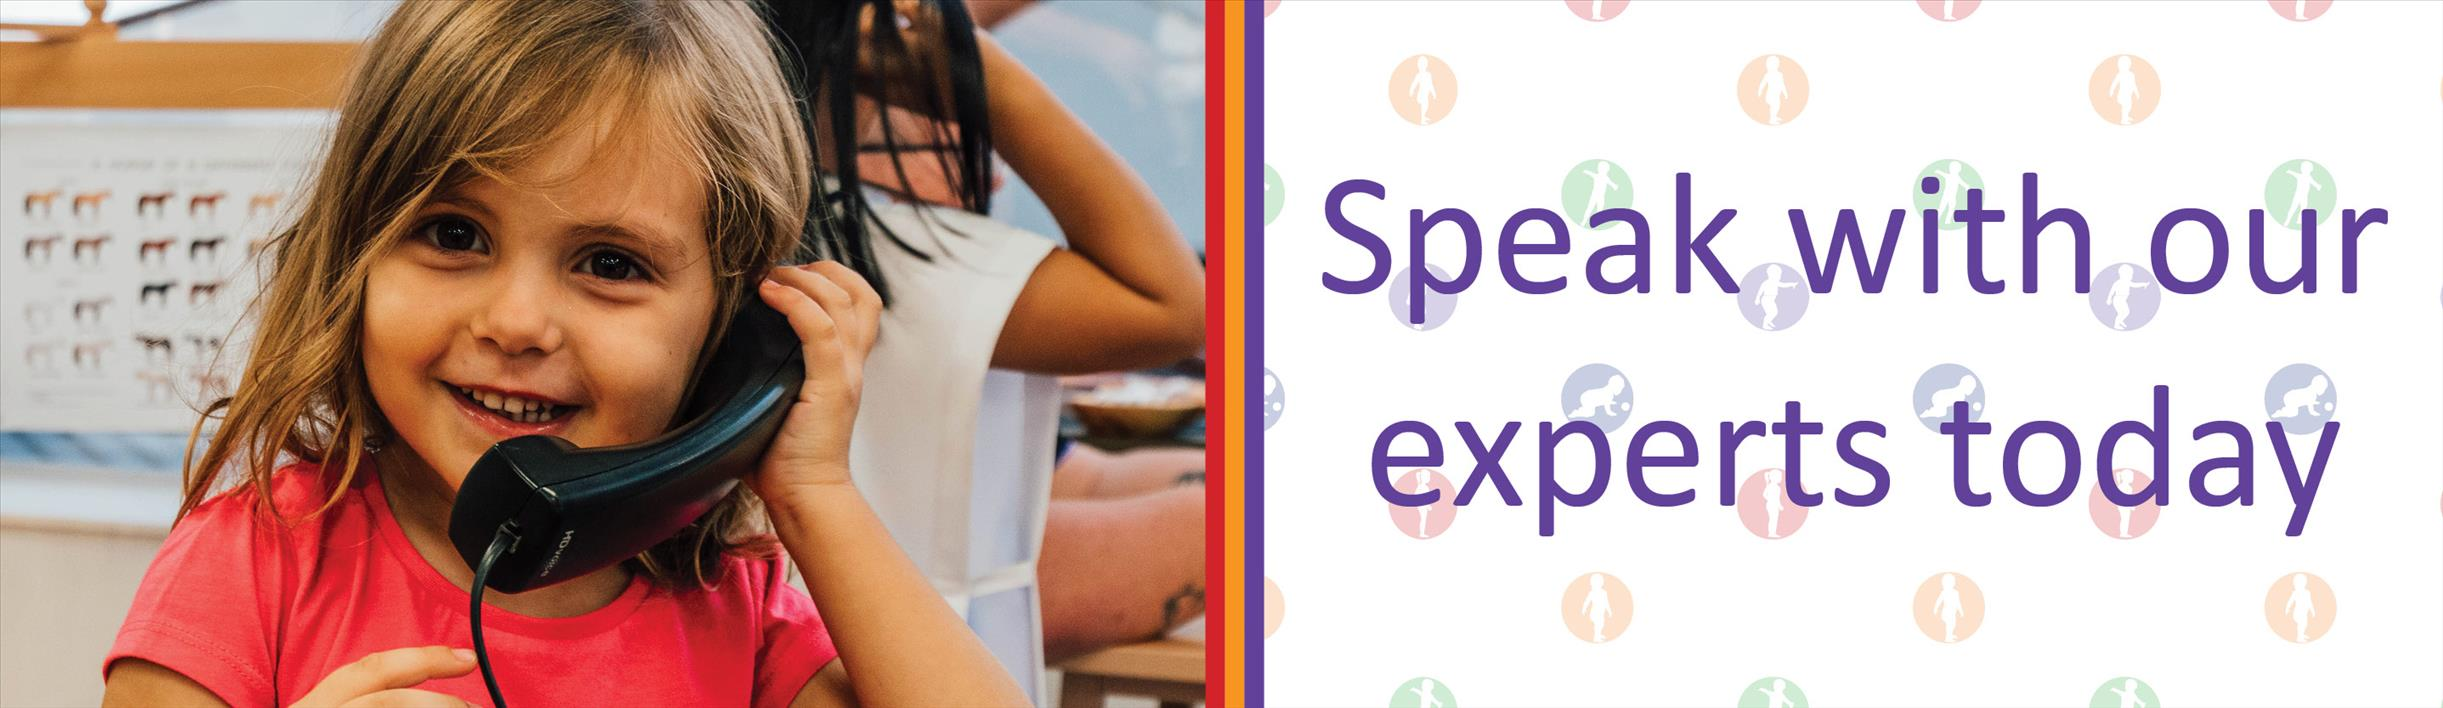 Speak with our experts today